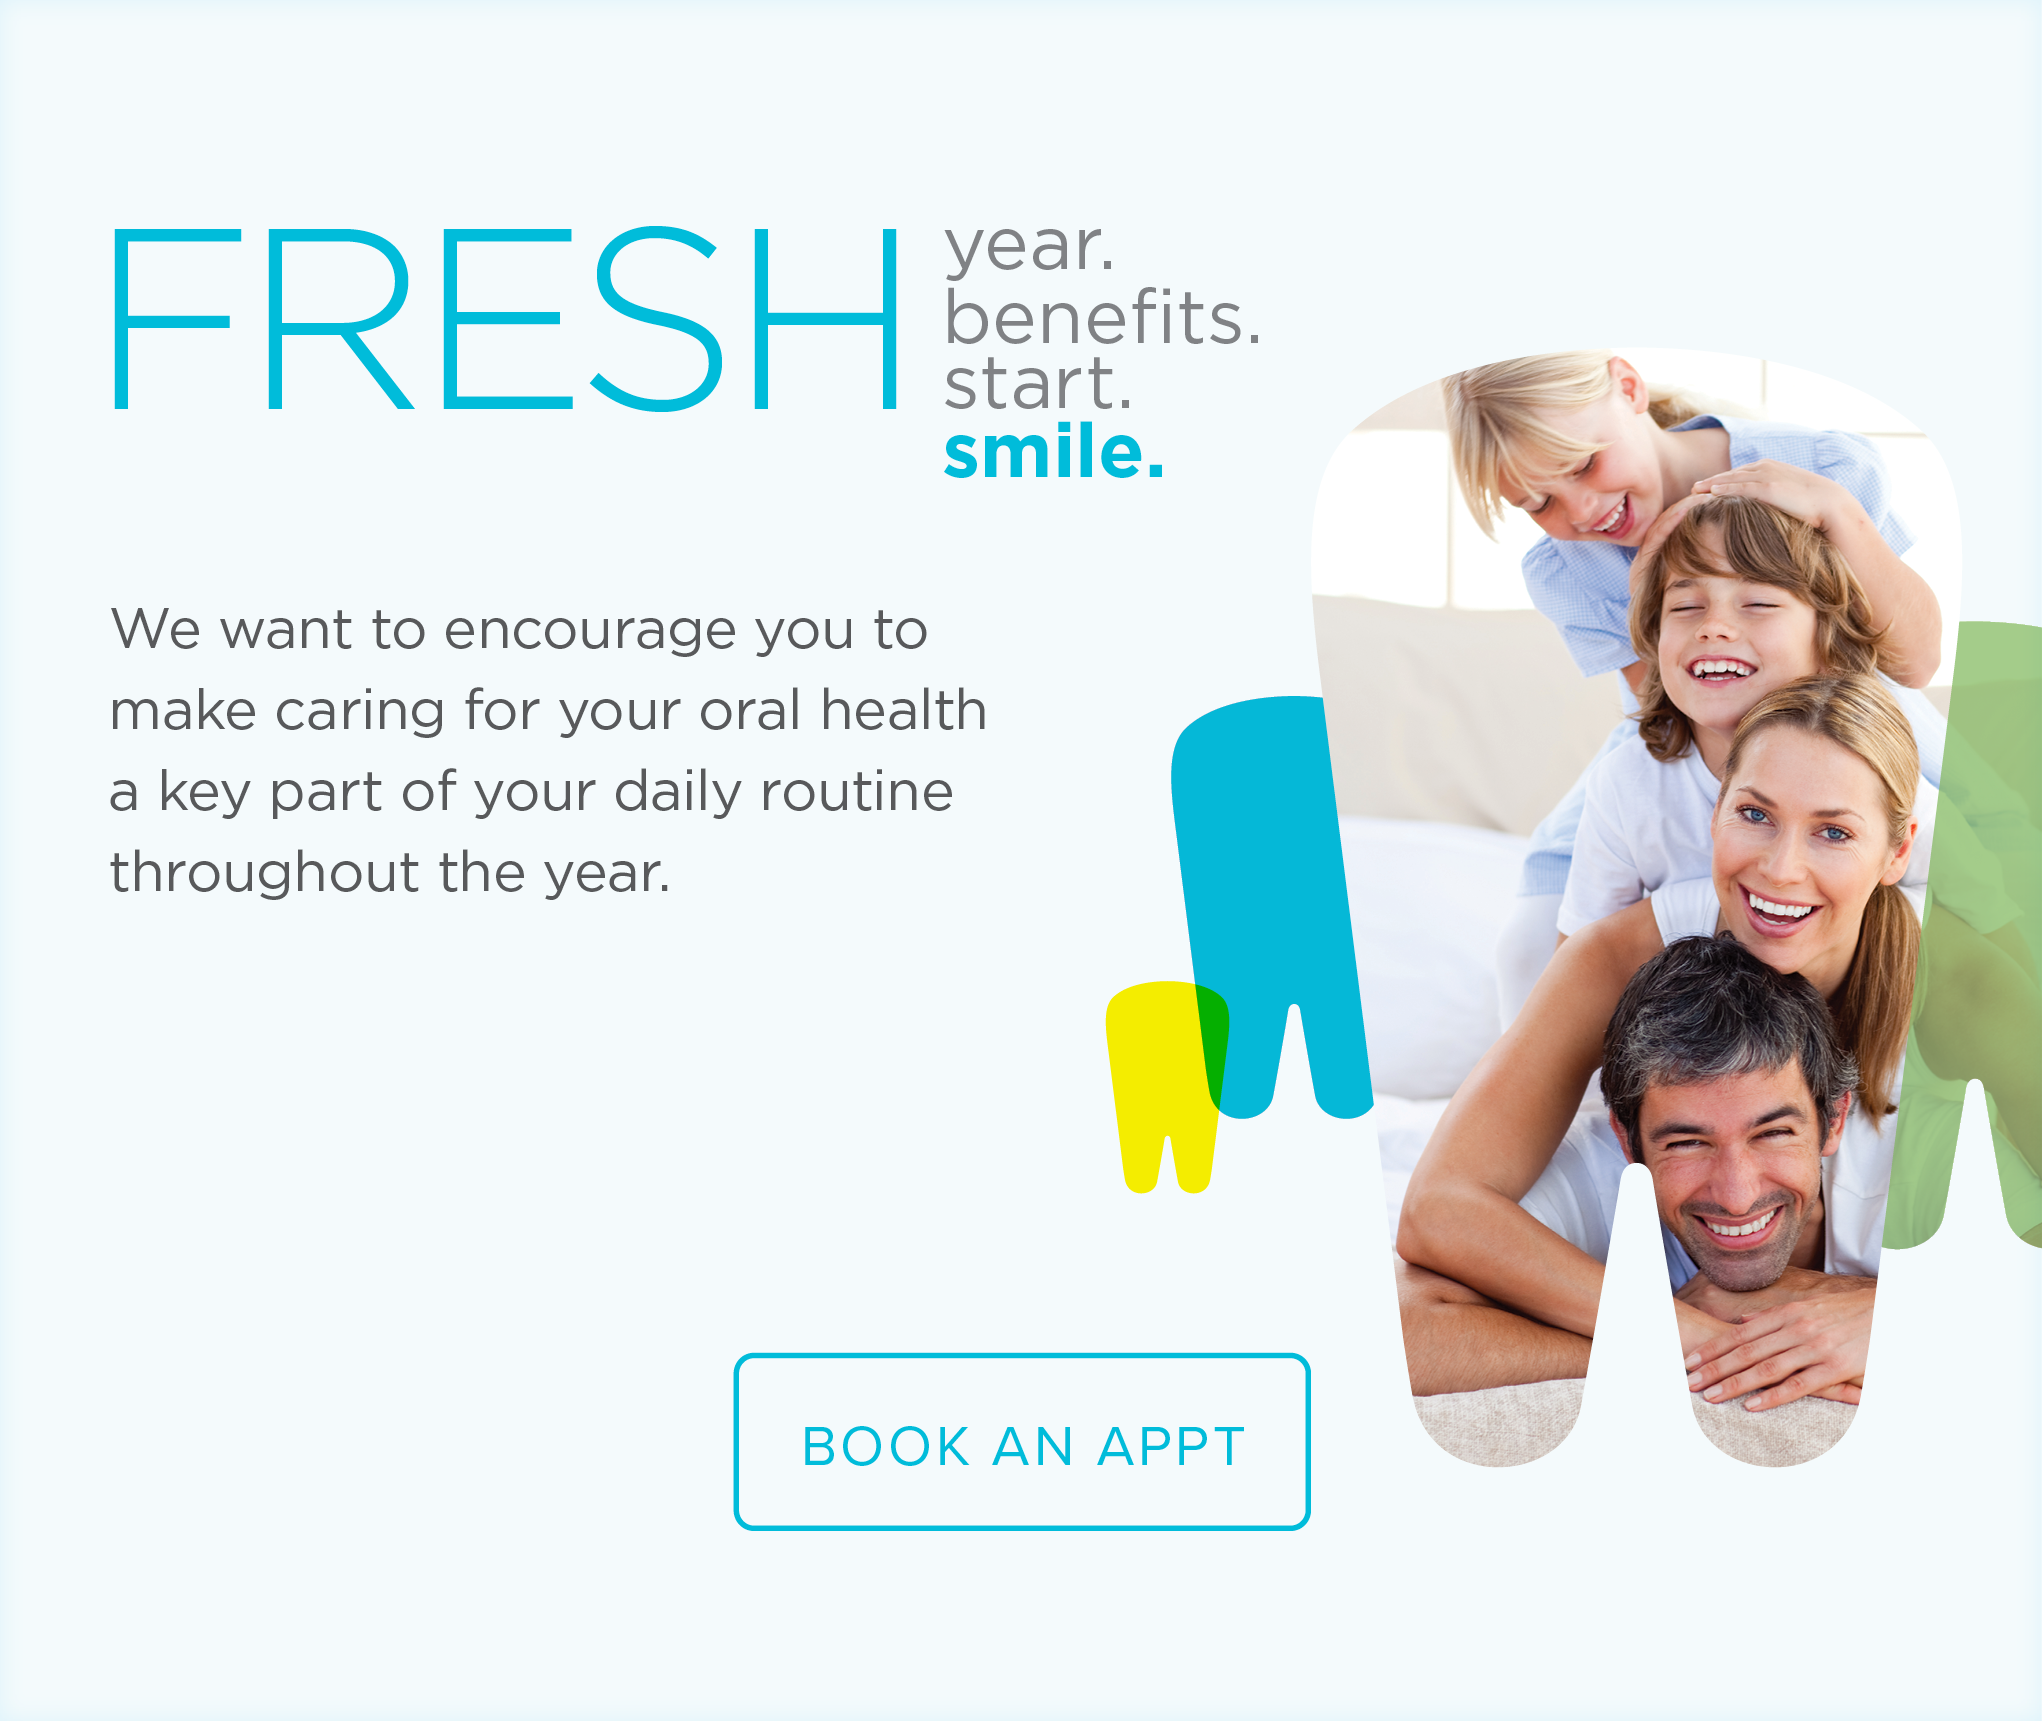 Crossing Dental Group and Orthodontics - Make the Most of Your Benefits